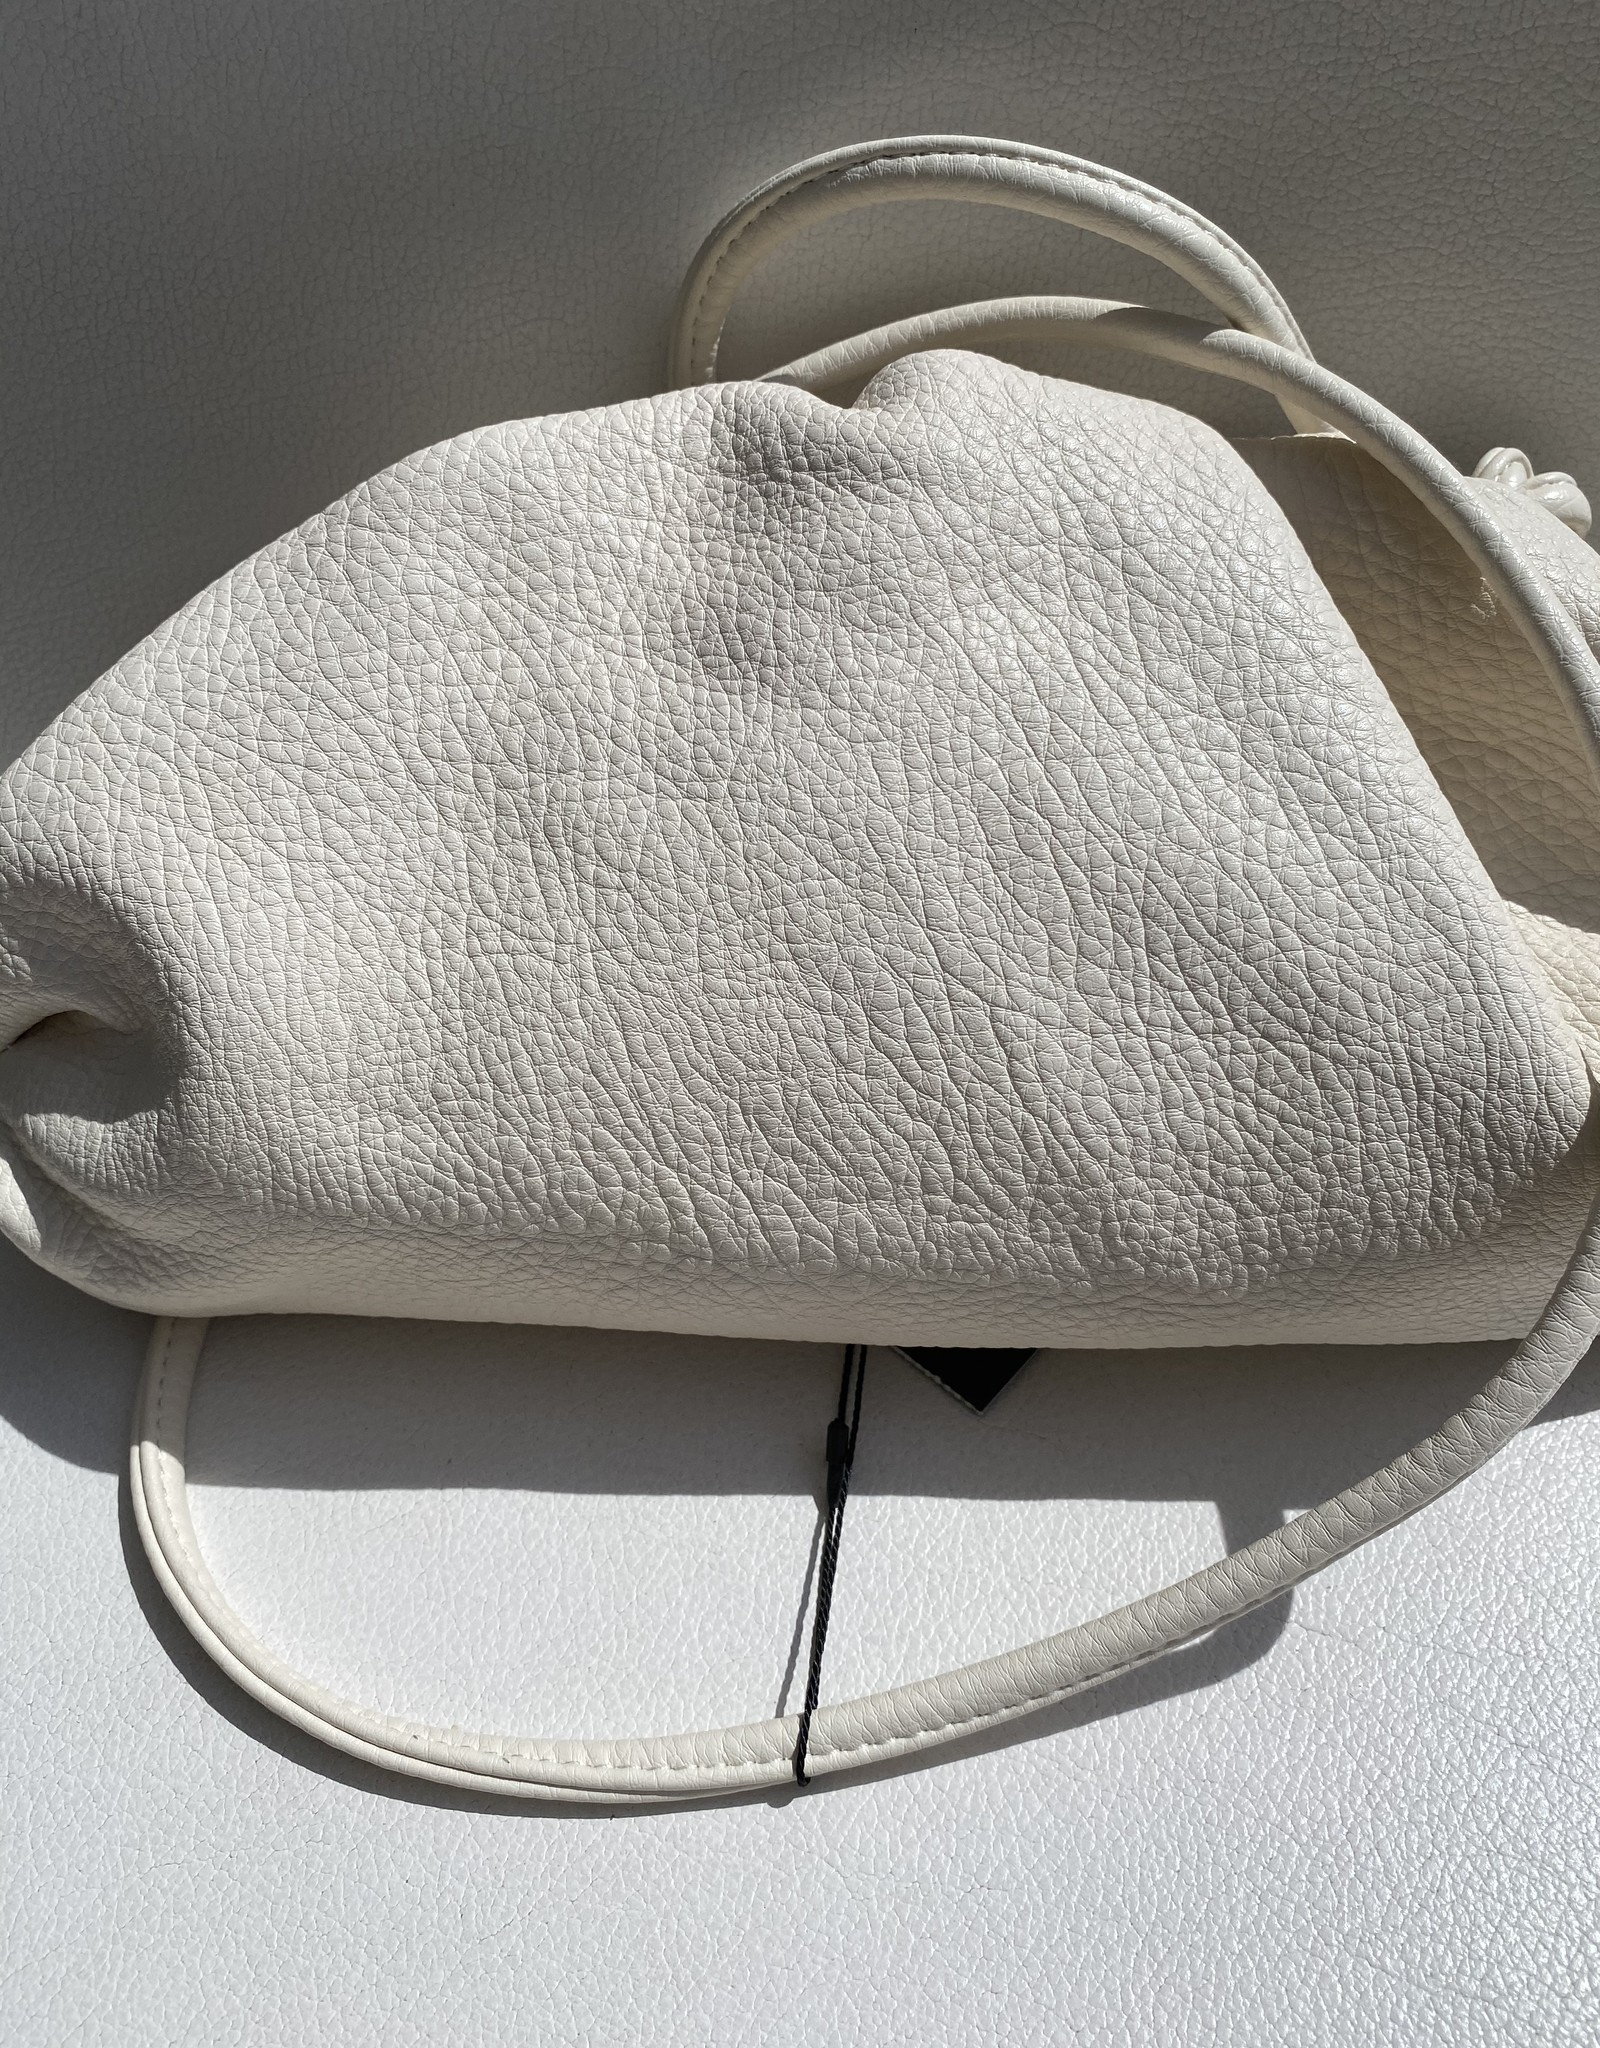 Cloudbag with shoulderbelt